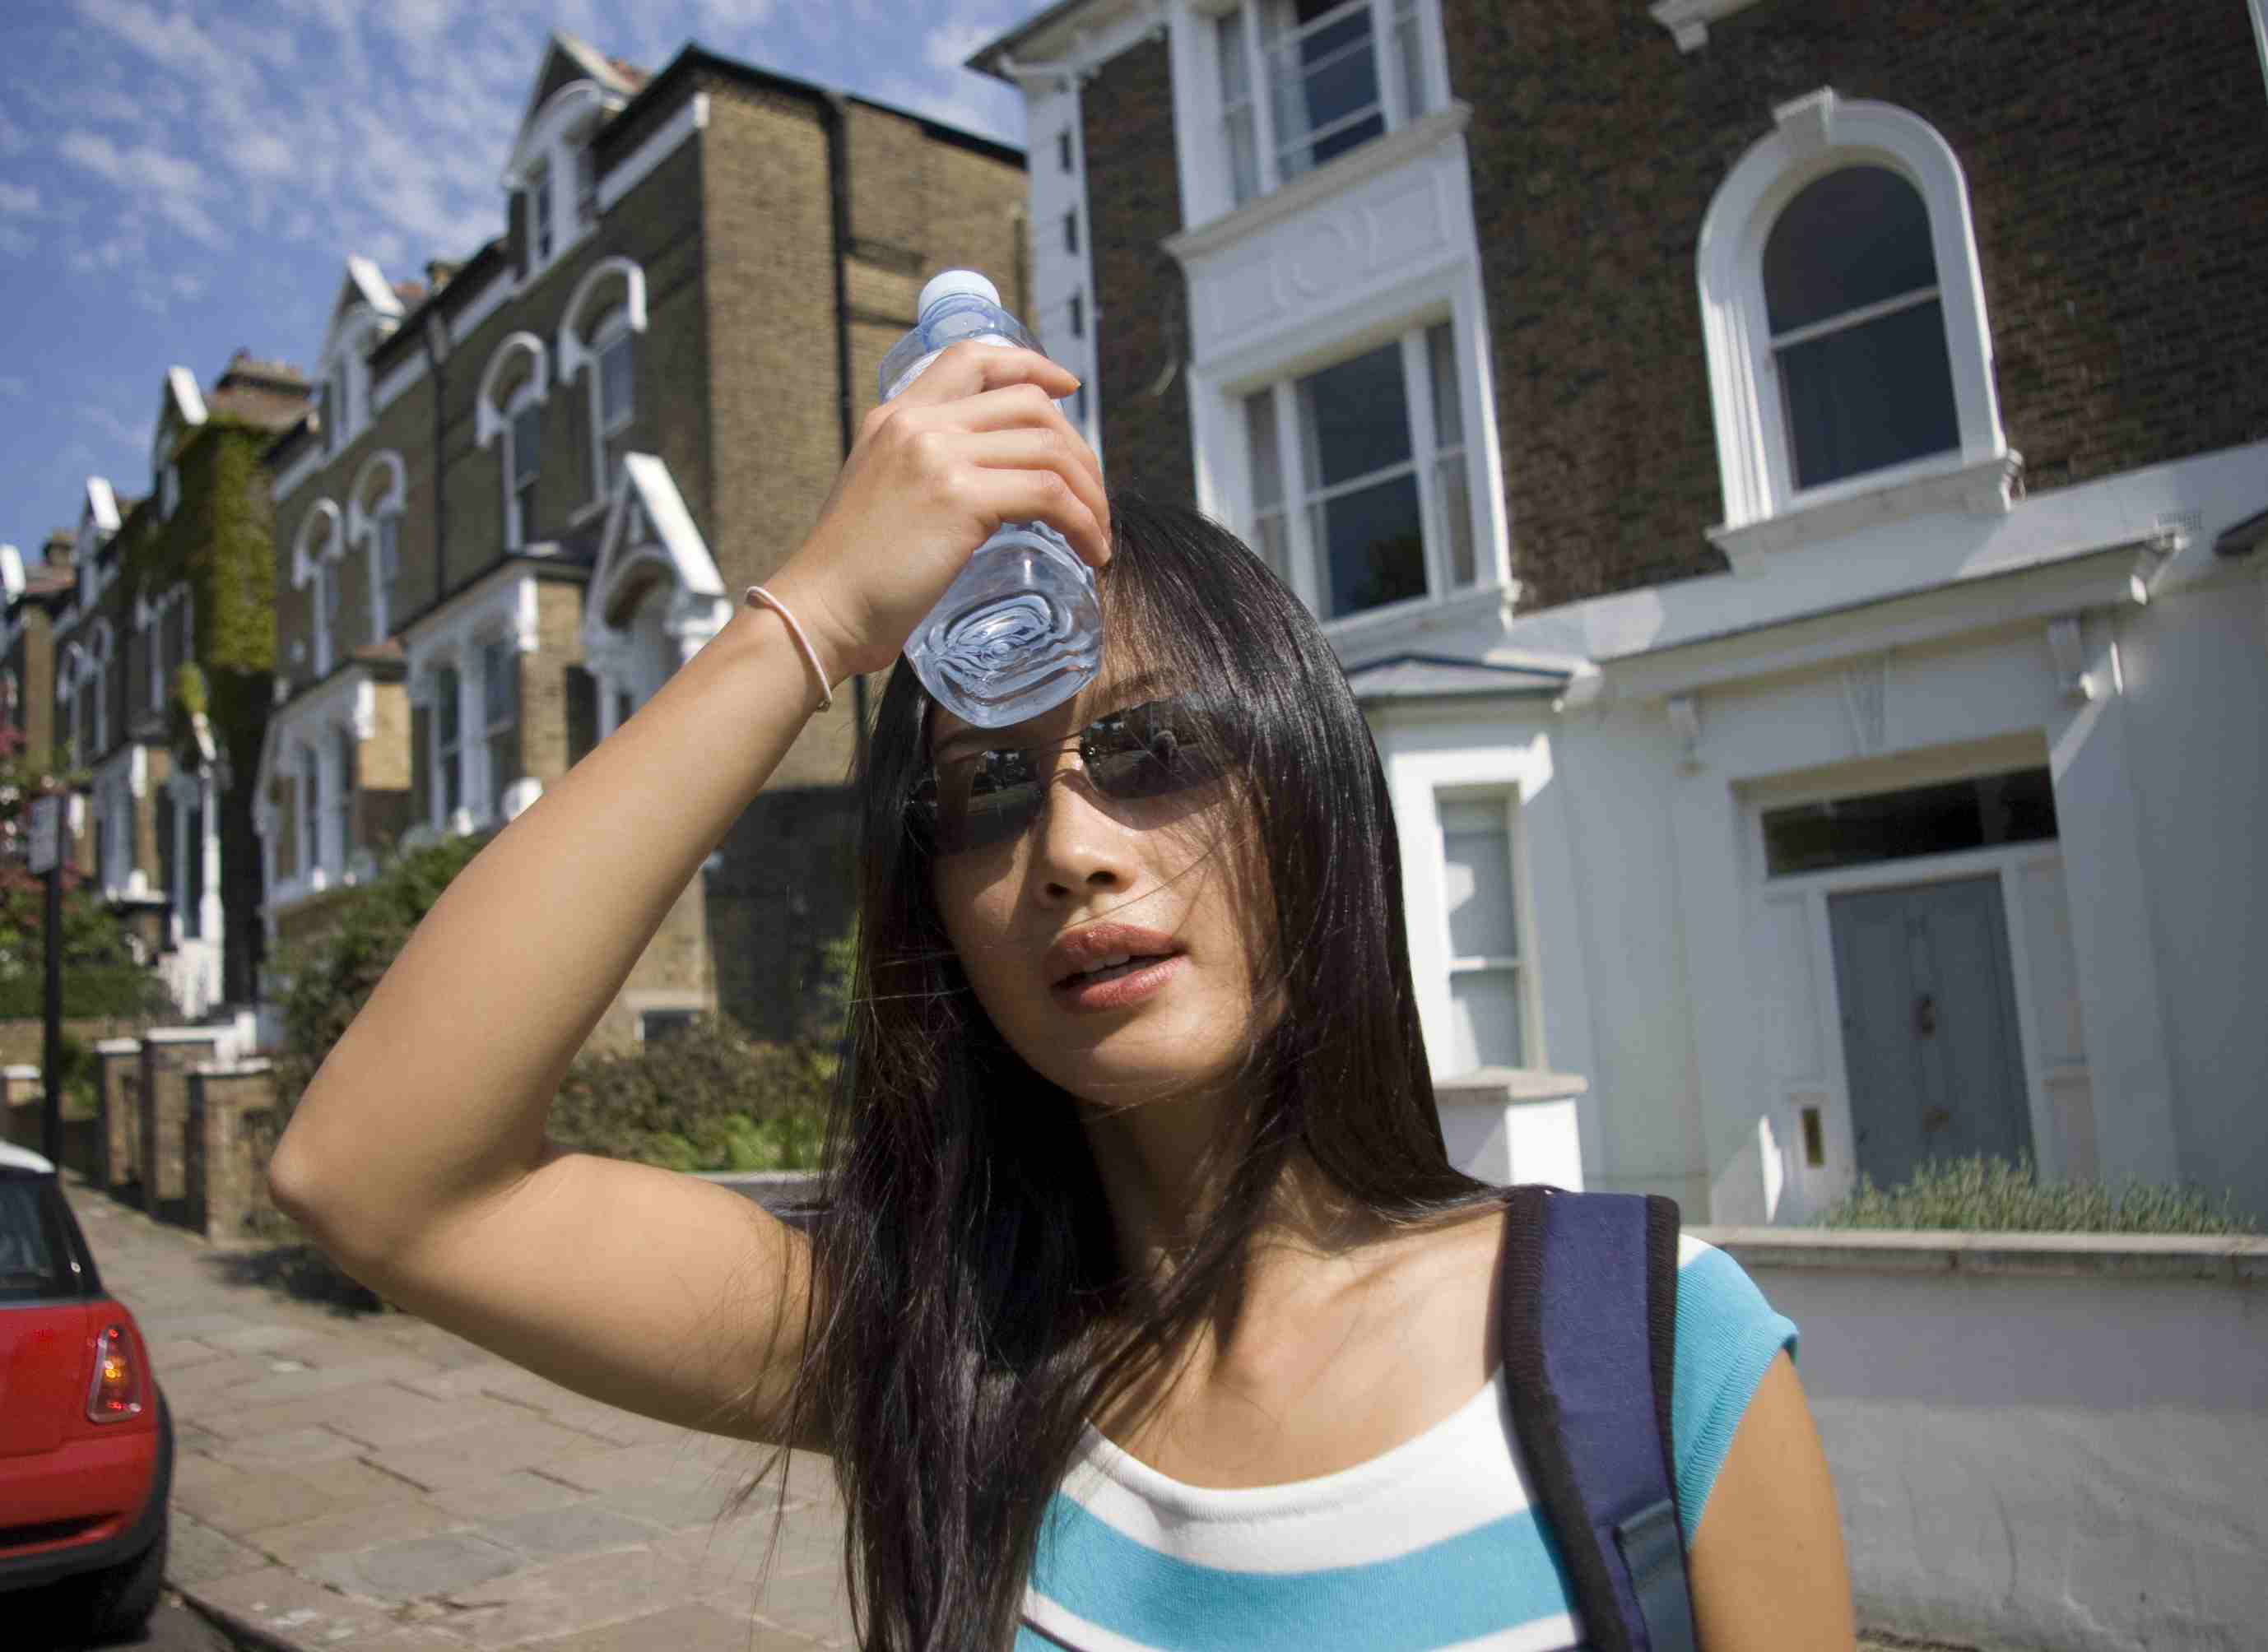 woman standing in the street putting cool water bottle on her head